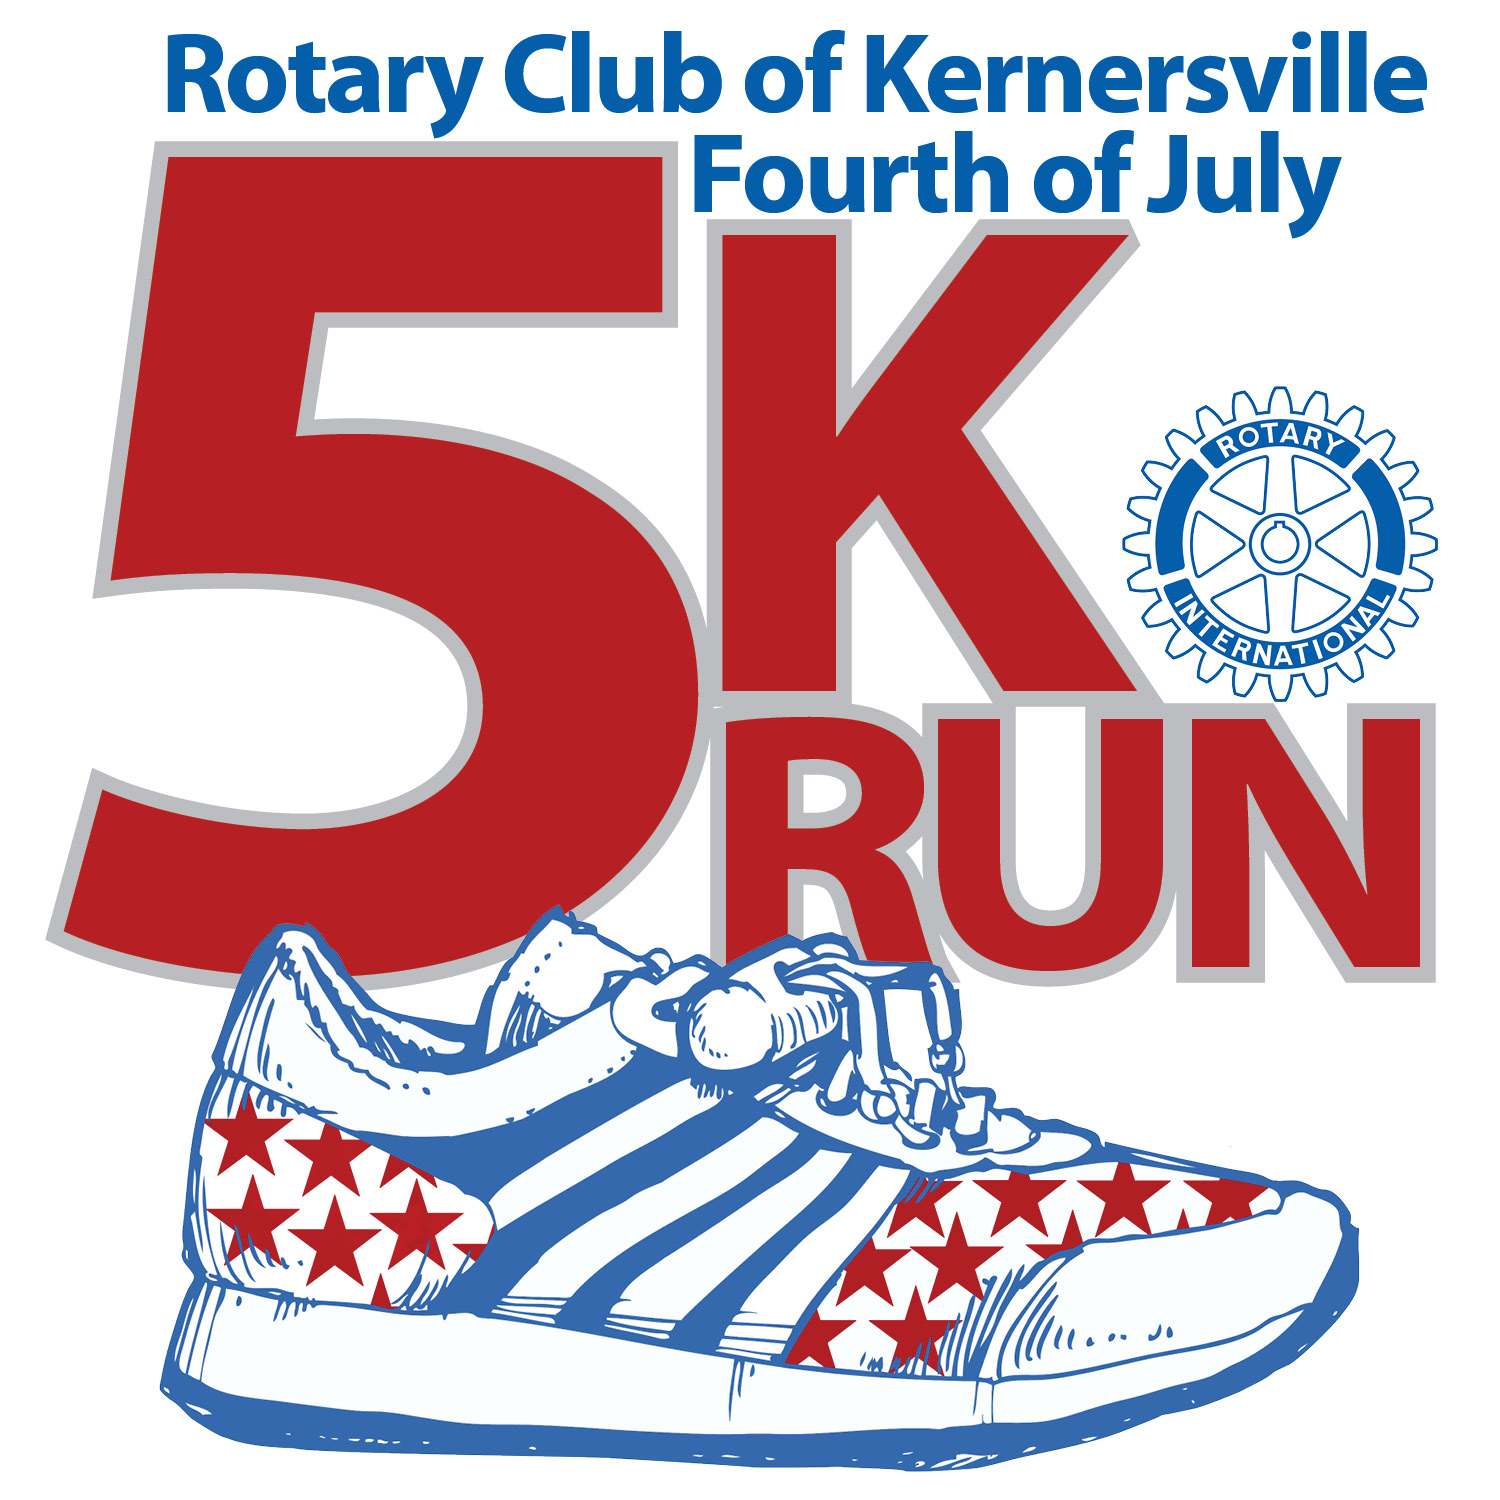 Rotary Club of Kernersville Fourth of July 5k